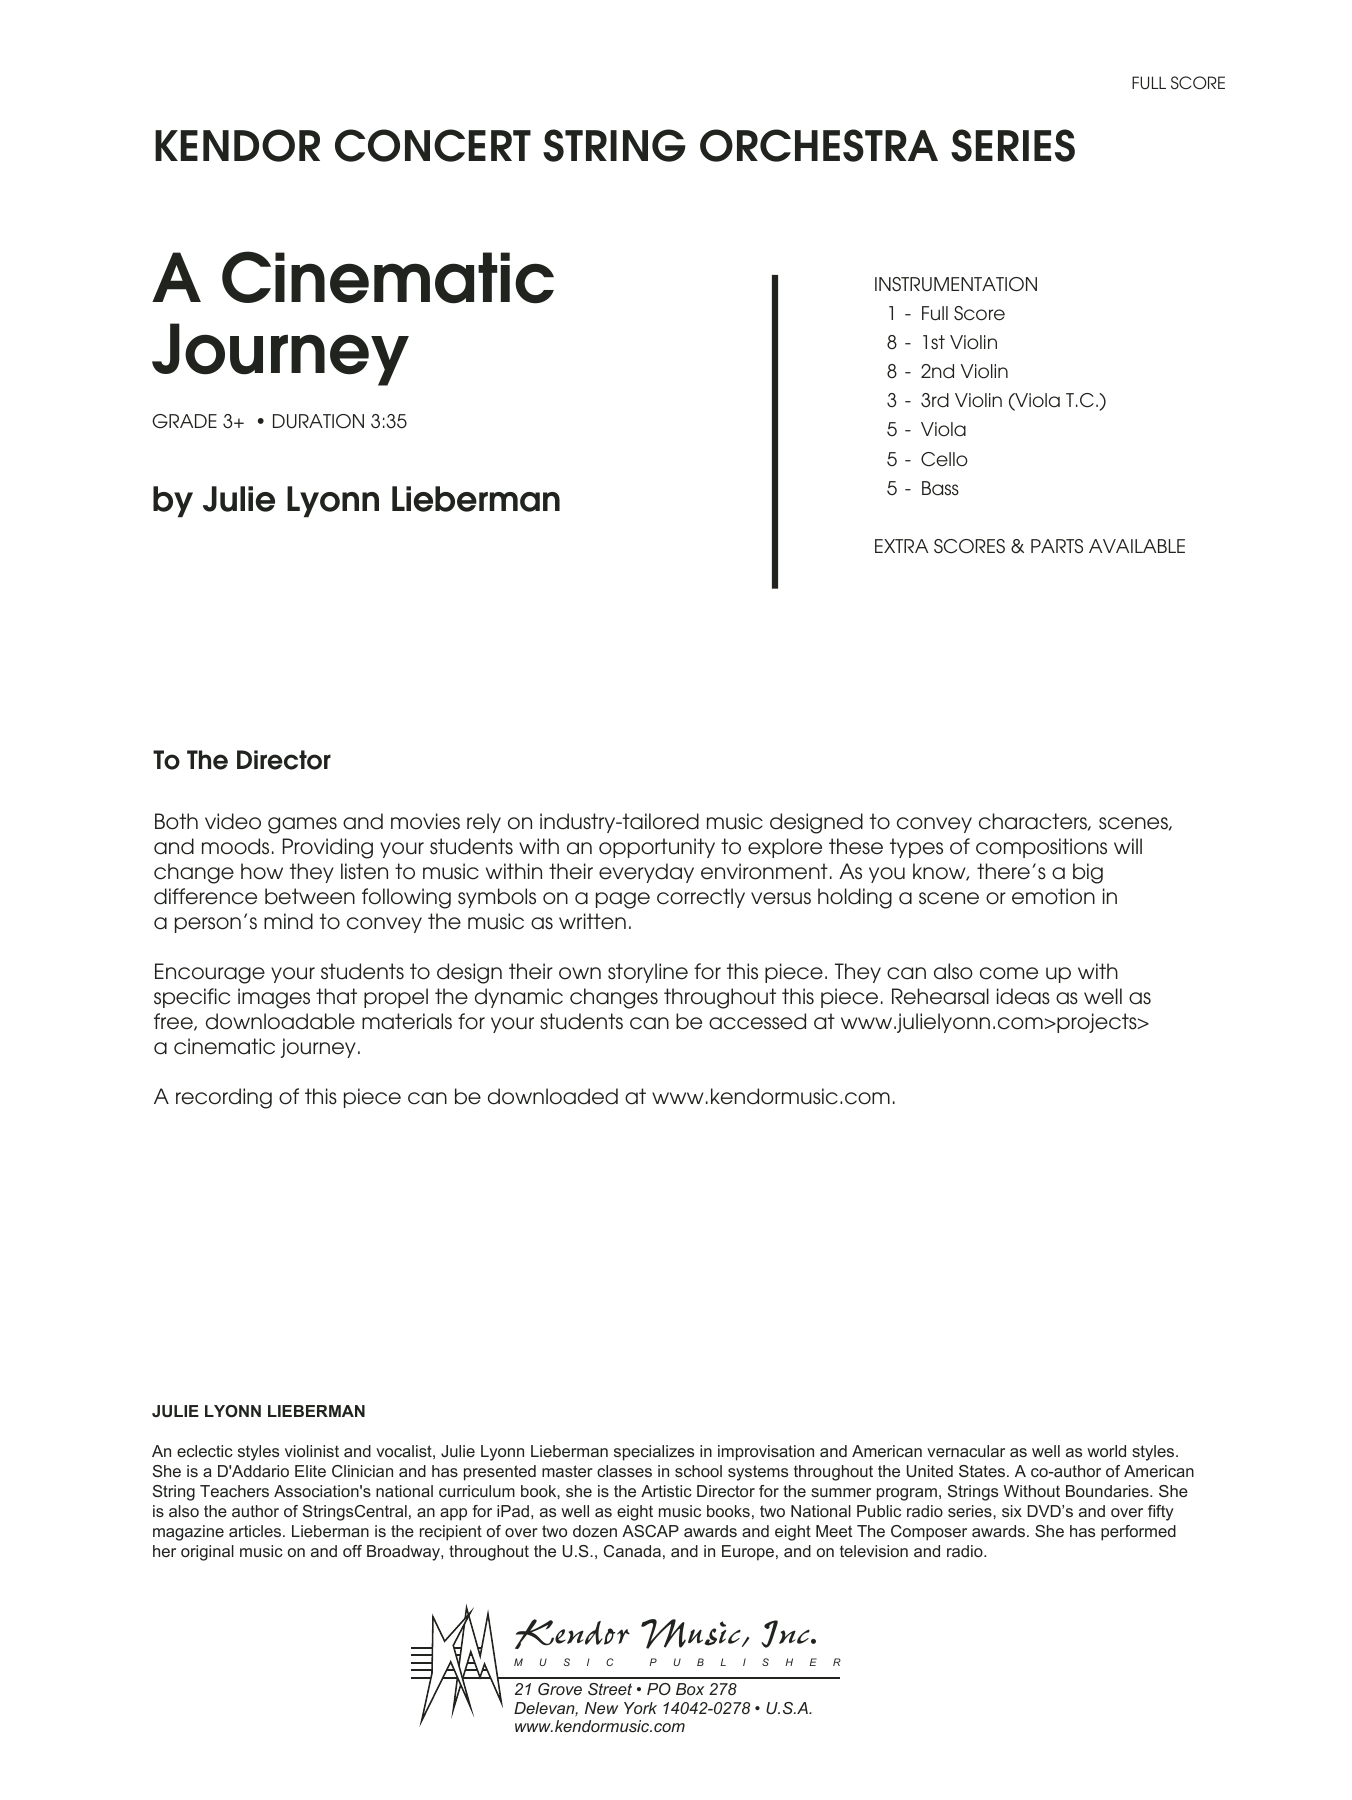 Julie Lyonn Lieberman A Cinematic Journey - Full Score sheet music notes and chords. Download Printable PDF.